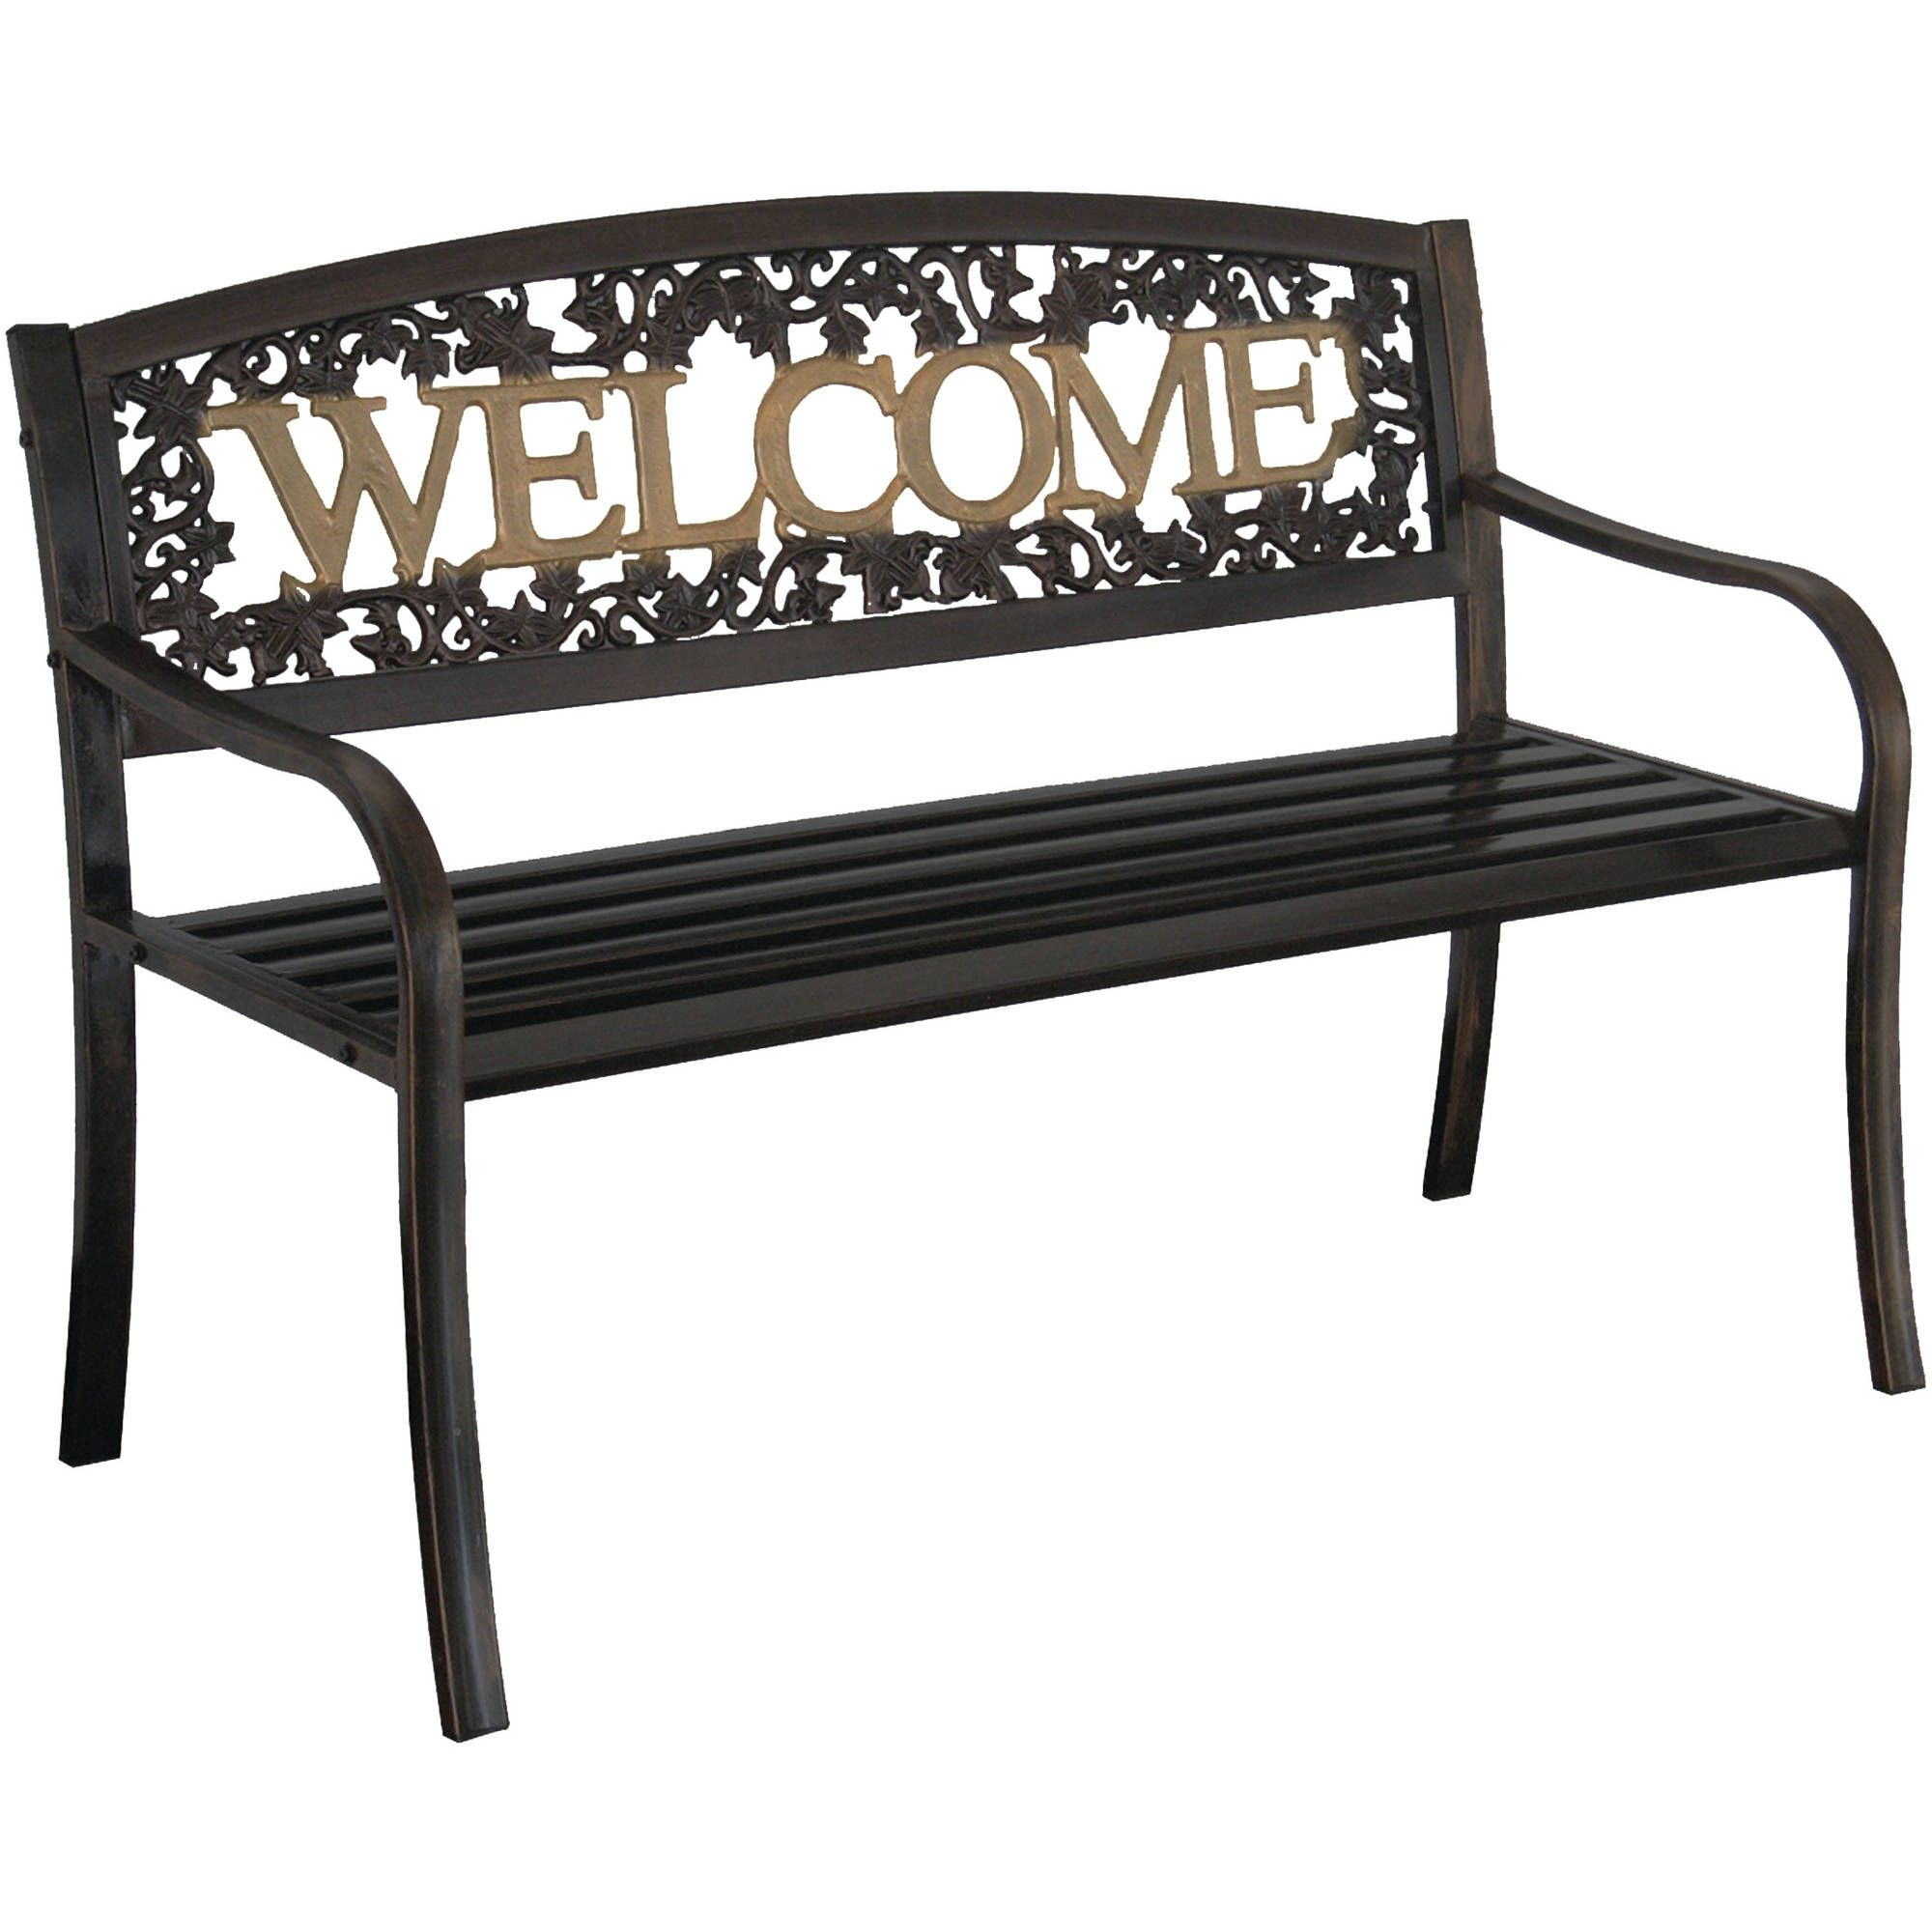 The leigh country welcome bench gives your home a warm and inviting feeling elegantly designed it comes in black with a unique